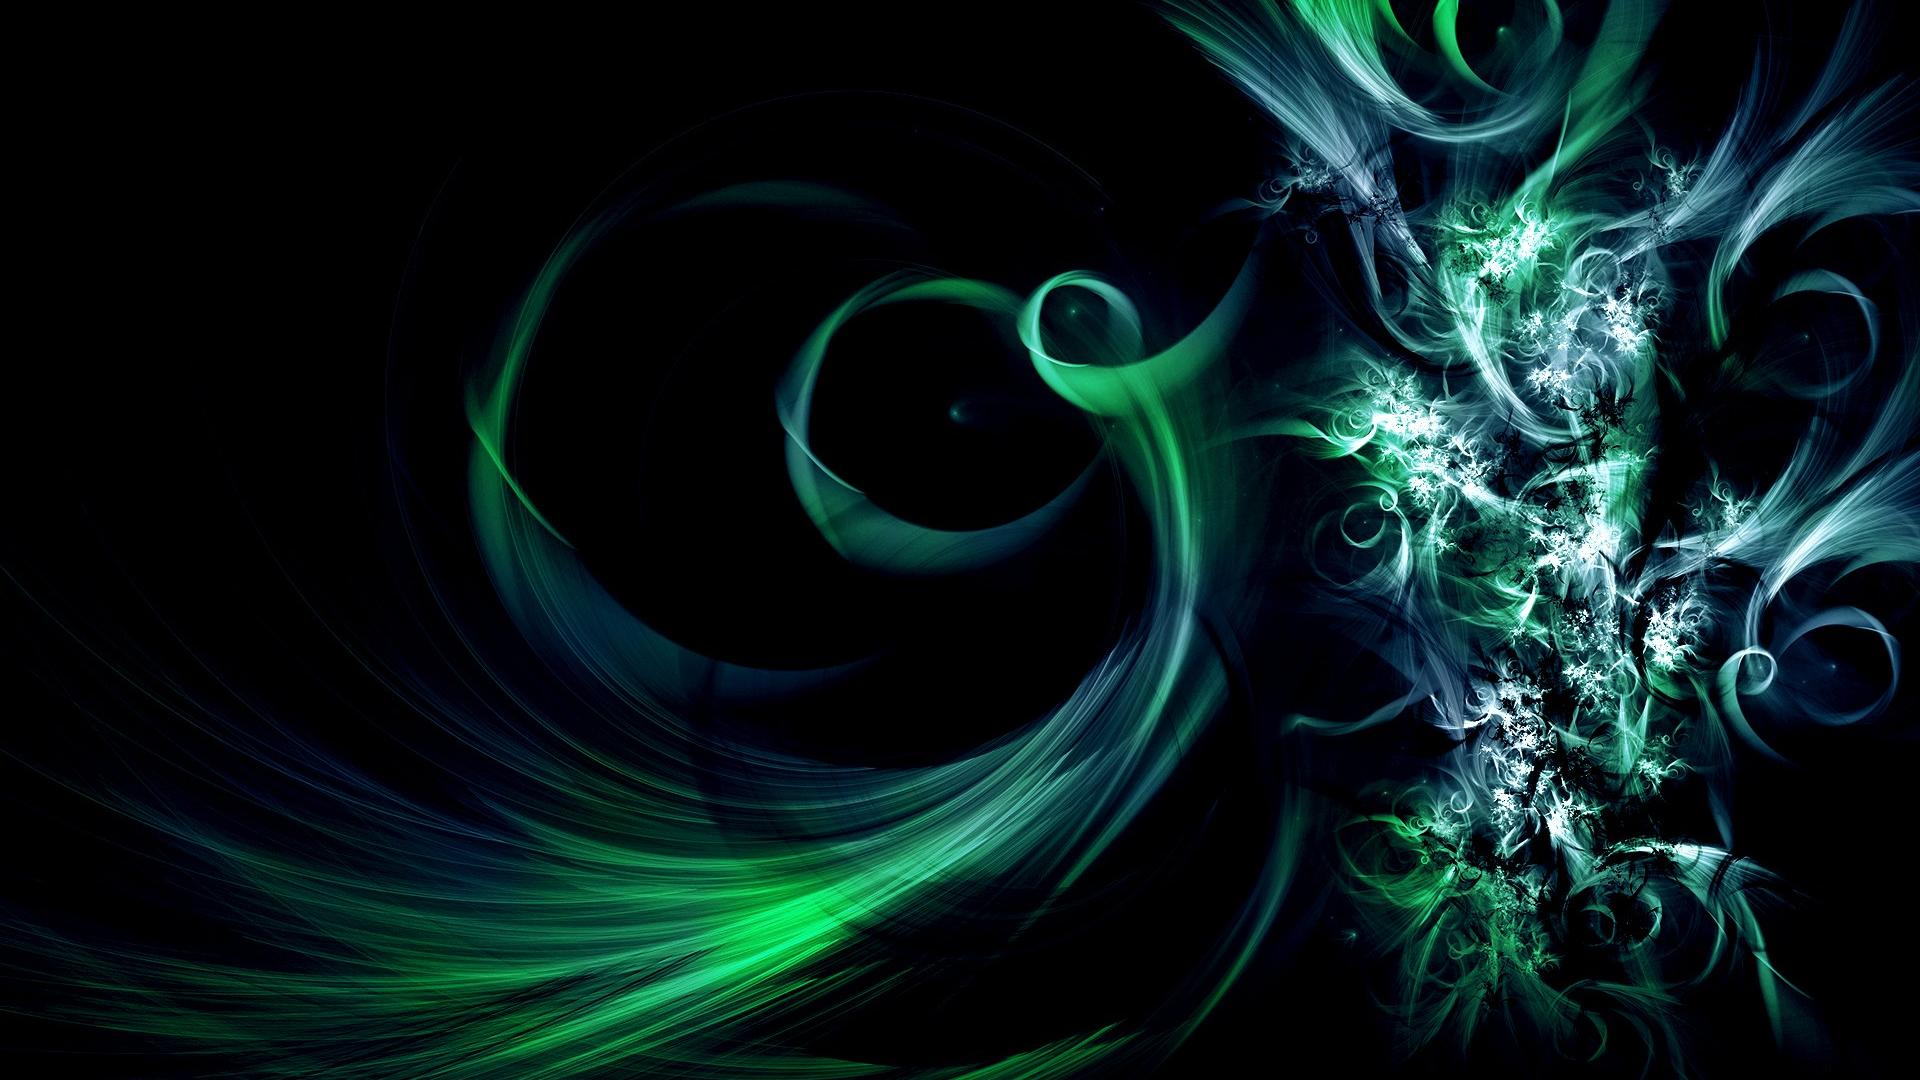 Cool Abstract Wallpapers Free - Wickedsa com